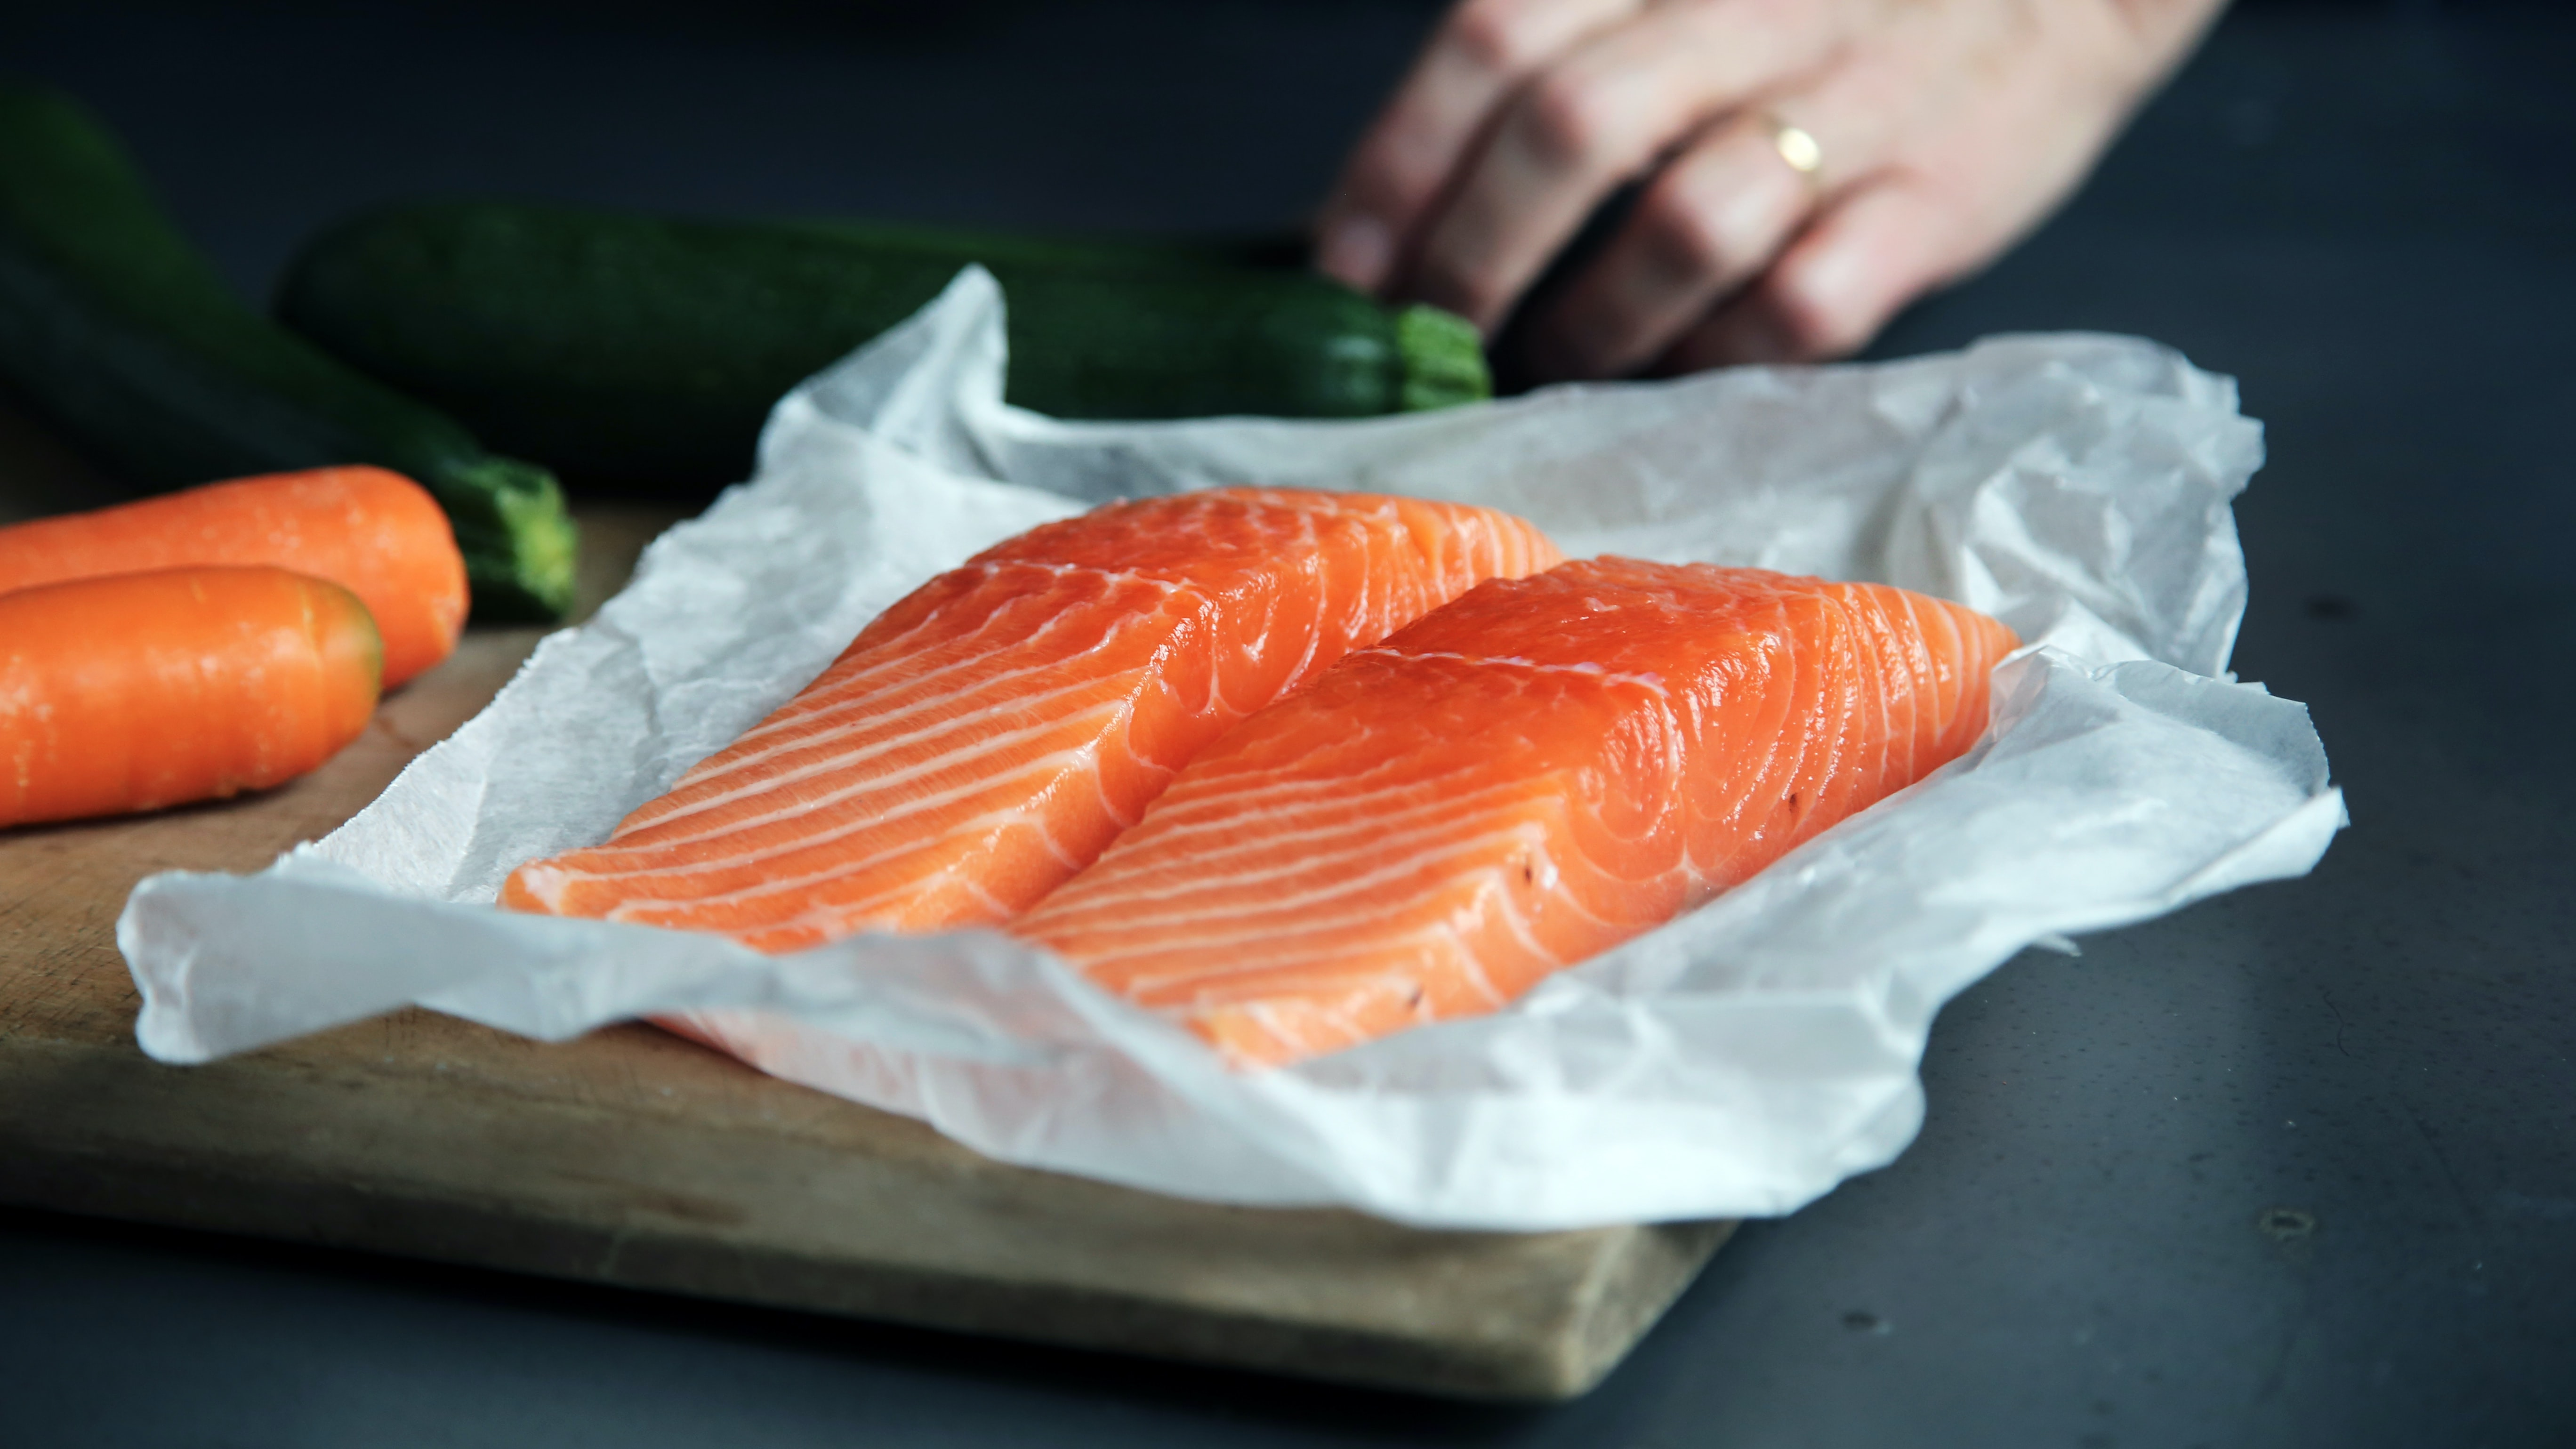 eat salmon for hairfall solution